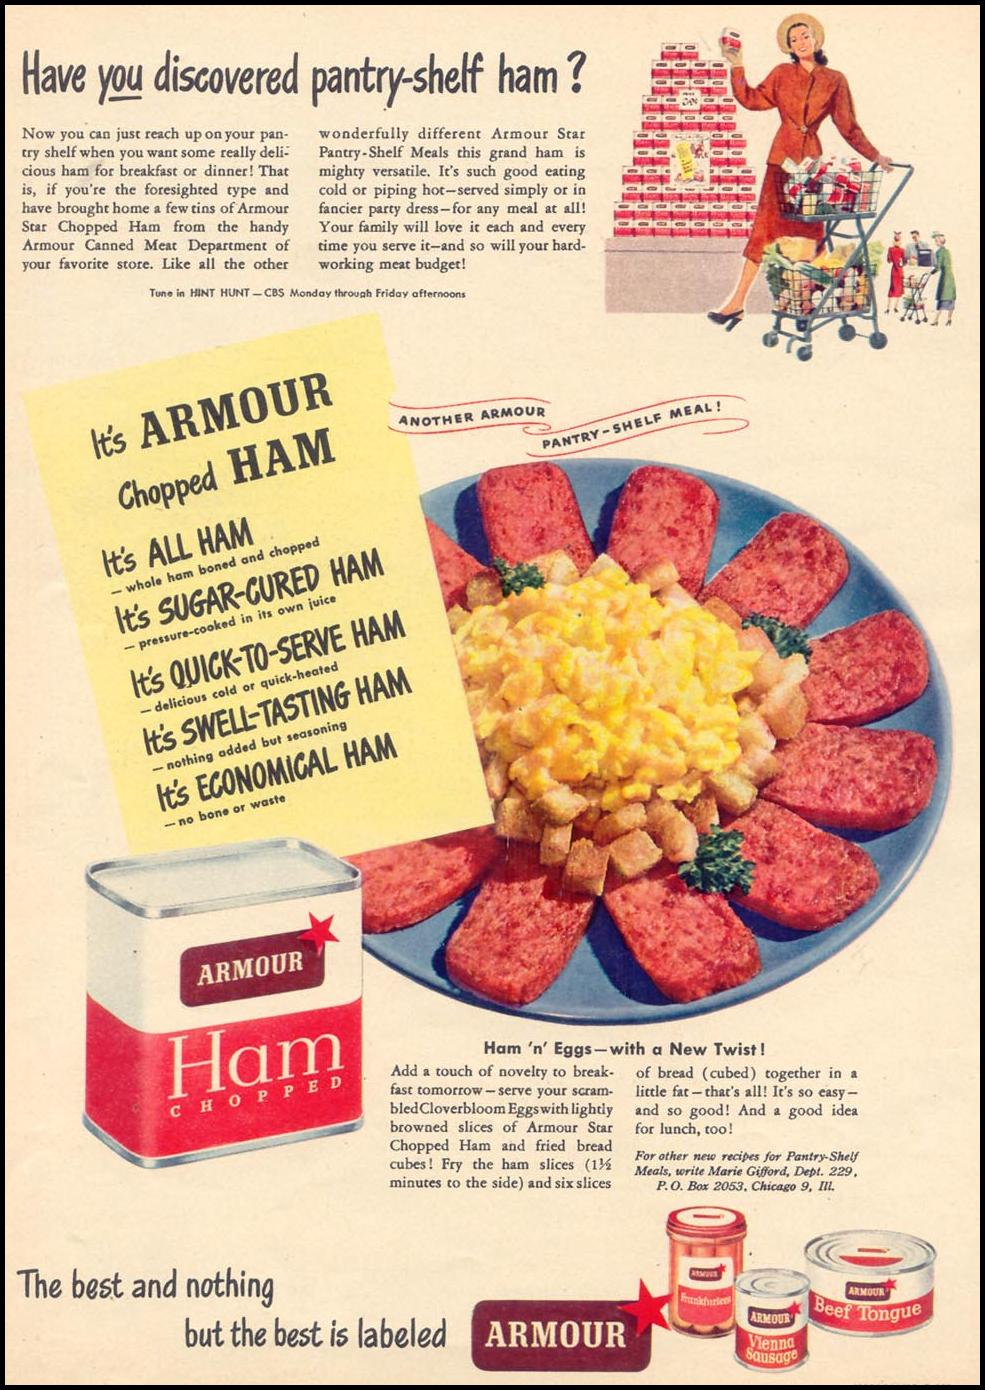 ARMOUR CANNED MEATS